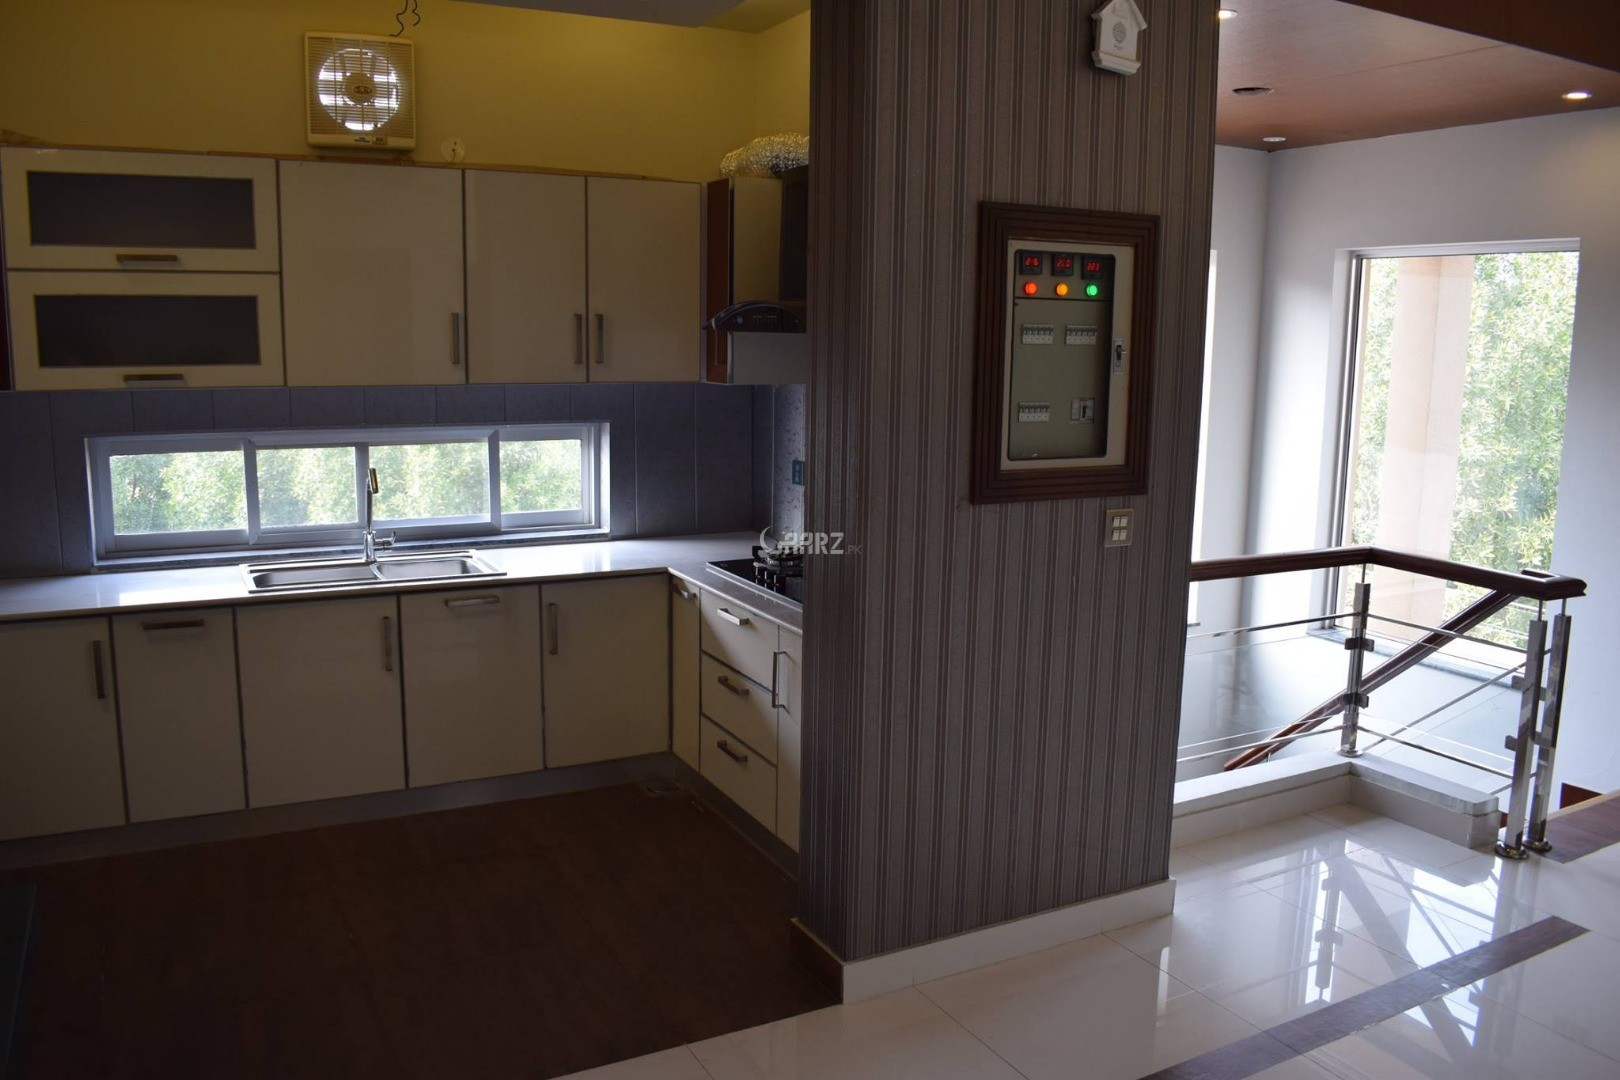 5 Marla Lower Portion for Rent in Islamabad Pakistan Town